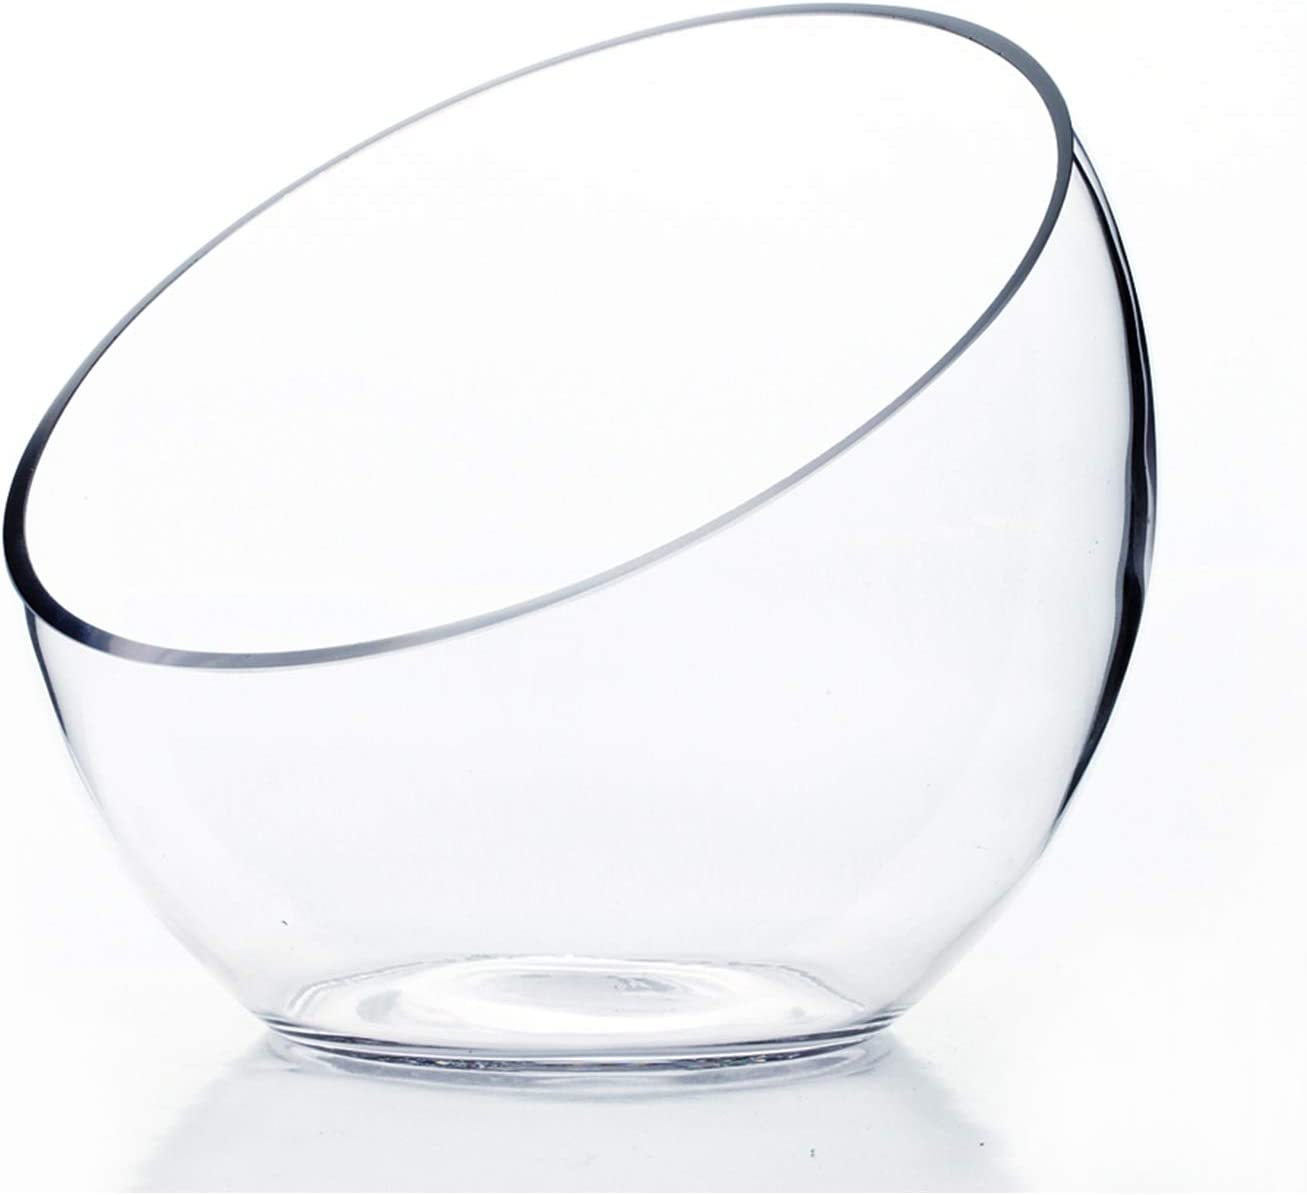 Wgv Clear Slant Cut Bowl Glass Vase Glass Terrarium 6 Inch X 2 7 Inch Amazon Ca Home Kitchen